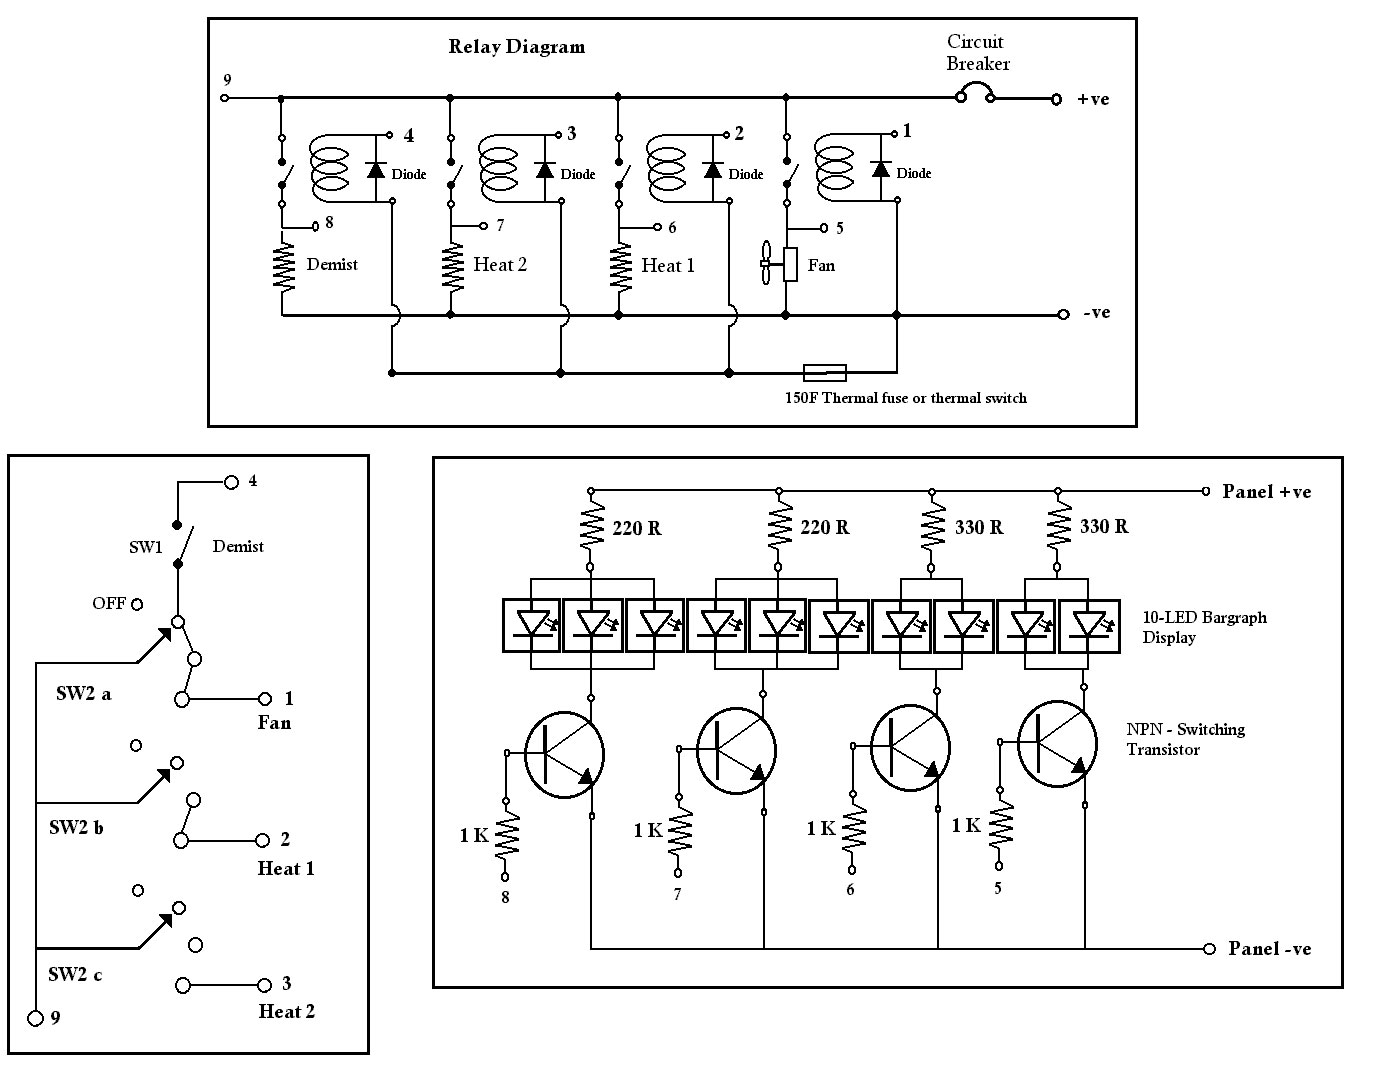 heating circuit diagram  u2013 readingrat net